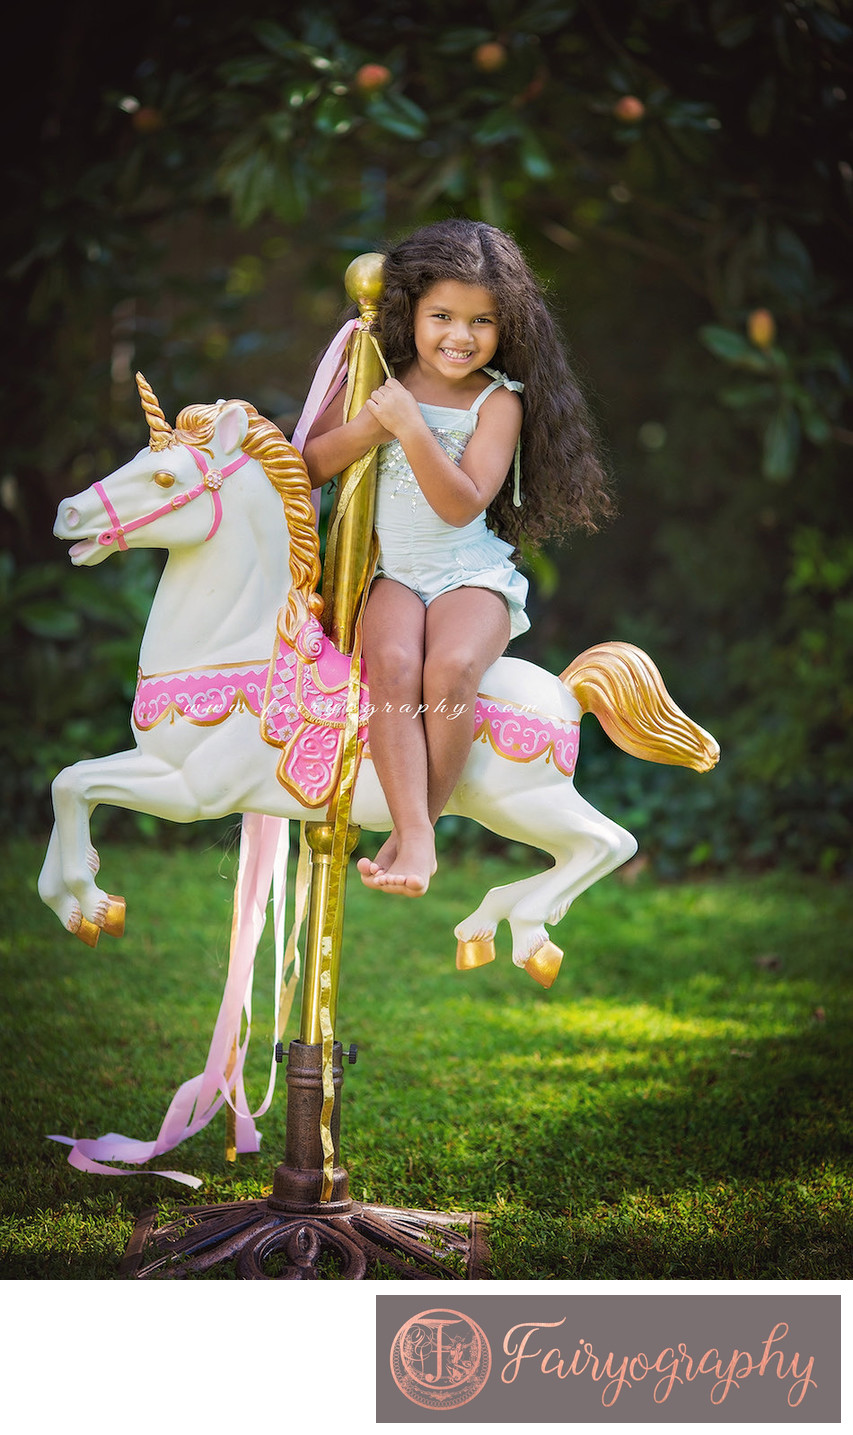 Carousel horse photographer